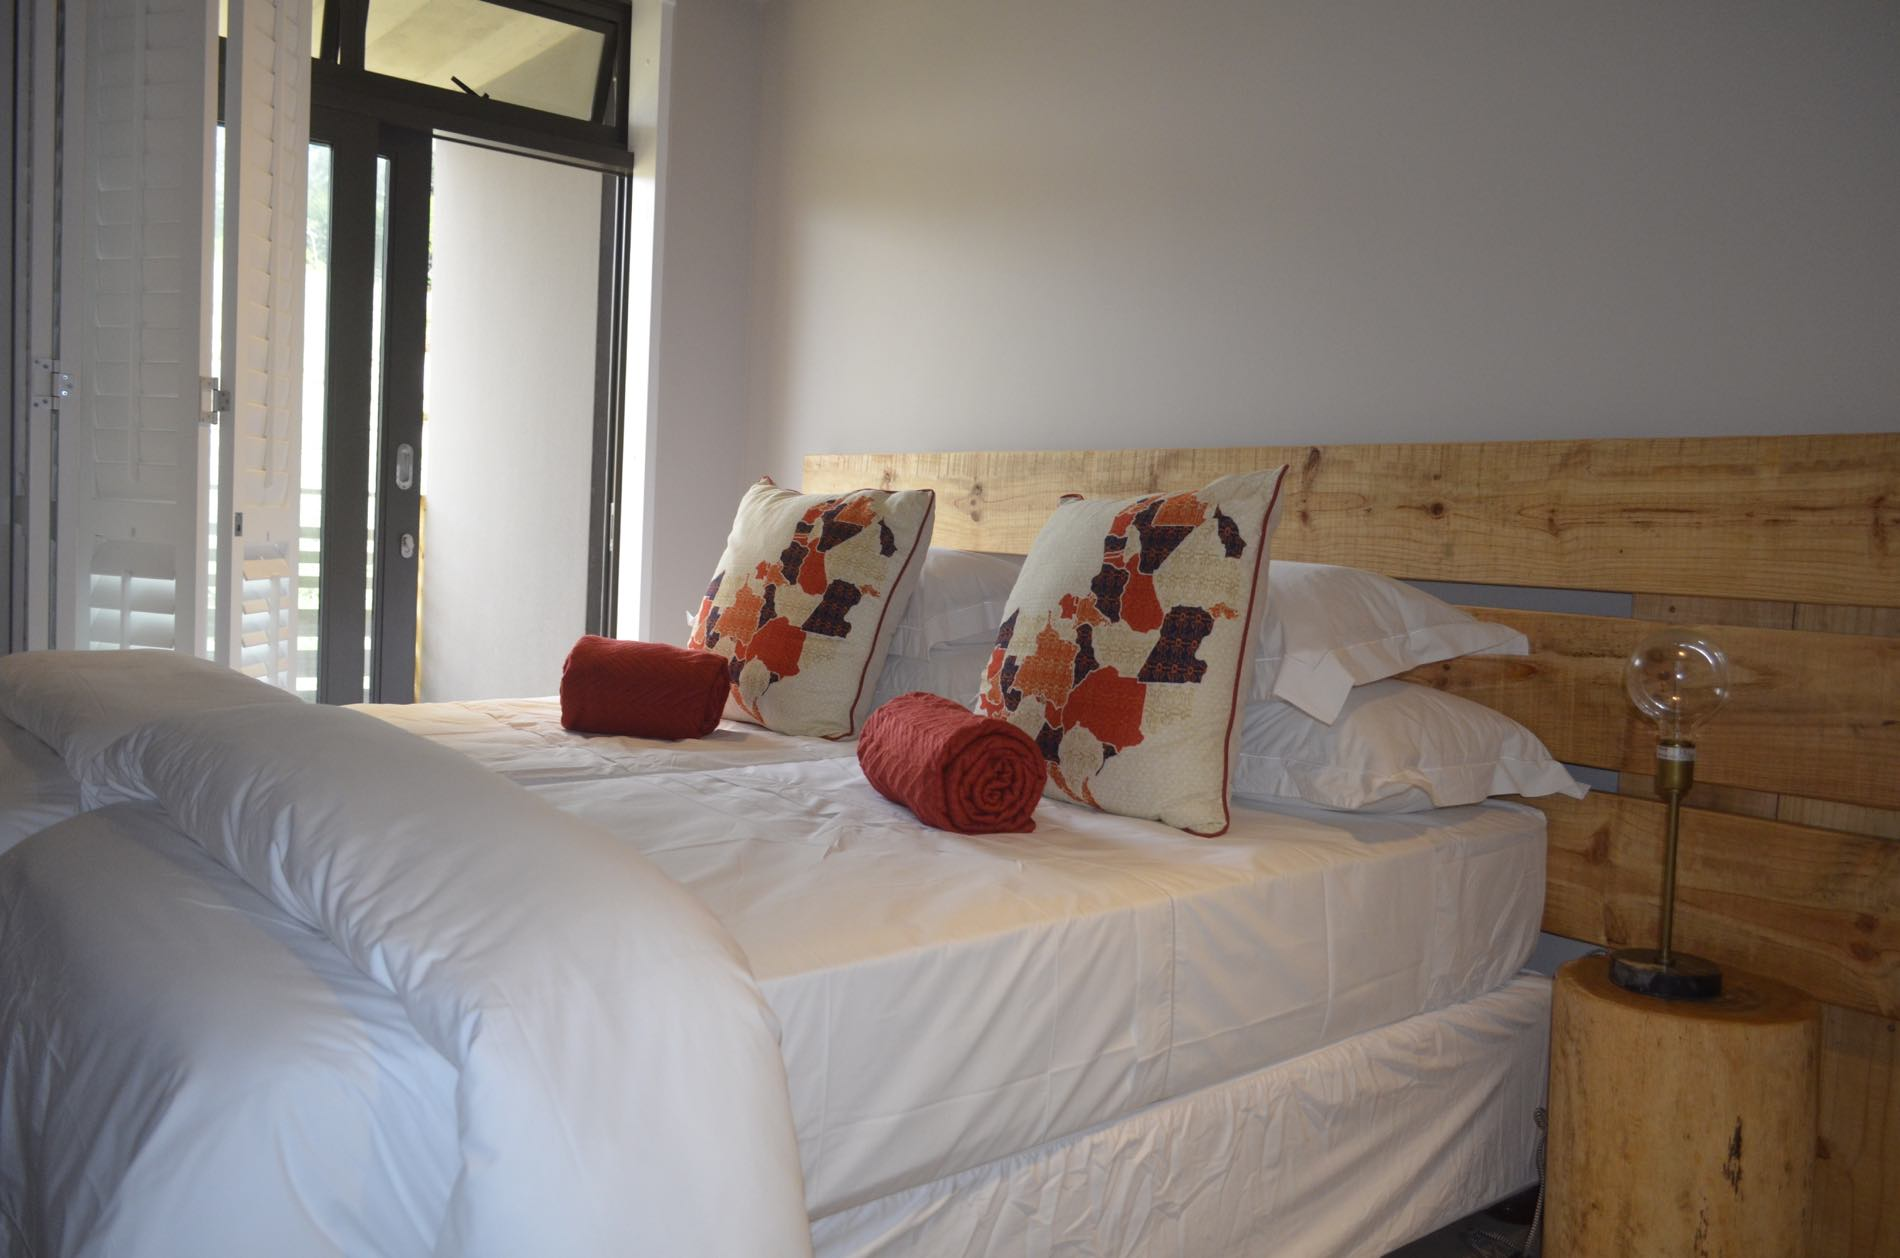 Illanga beach house Self Catering Accommodation Self at Plett13